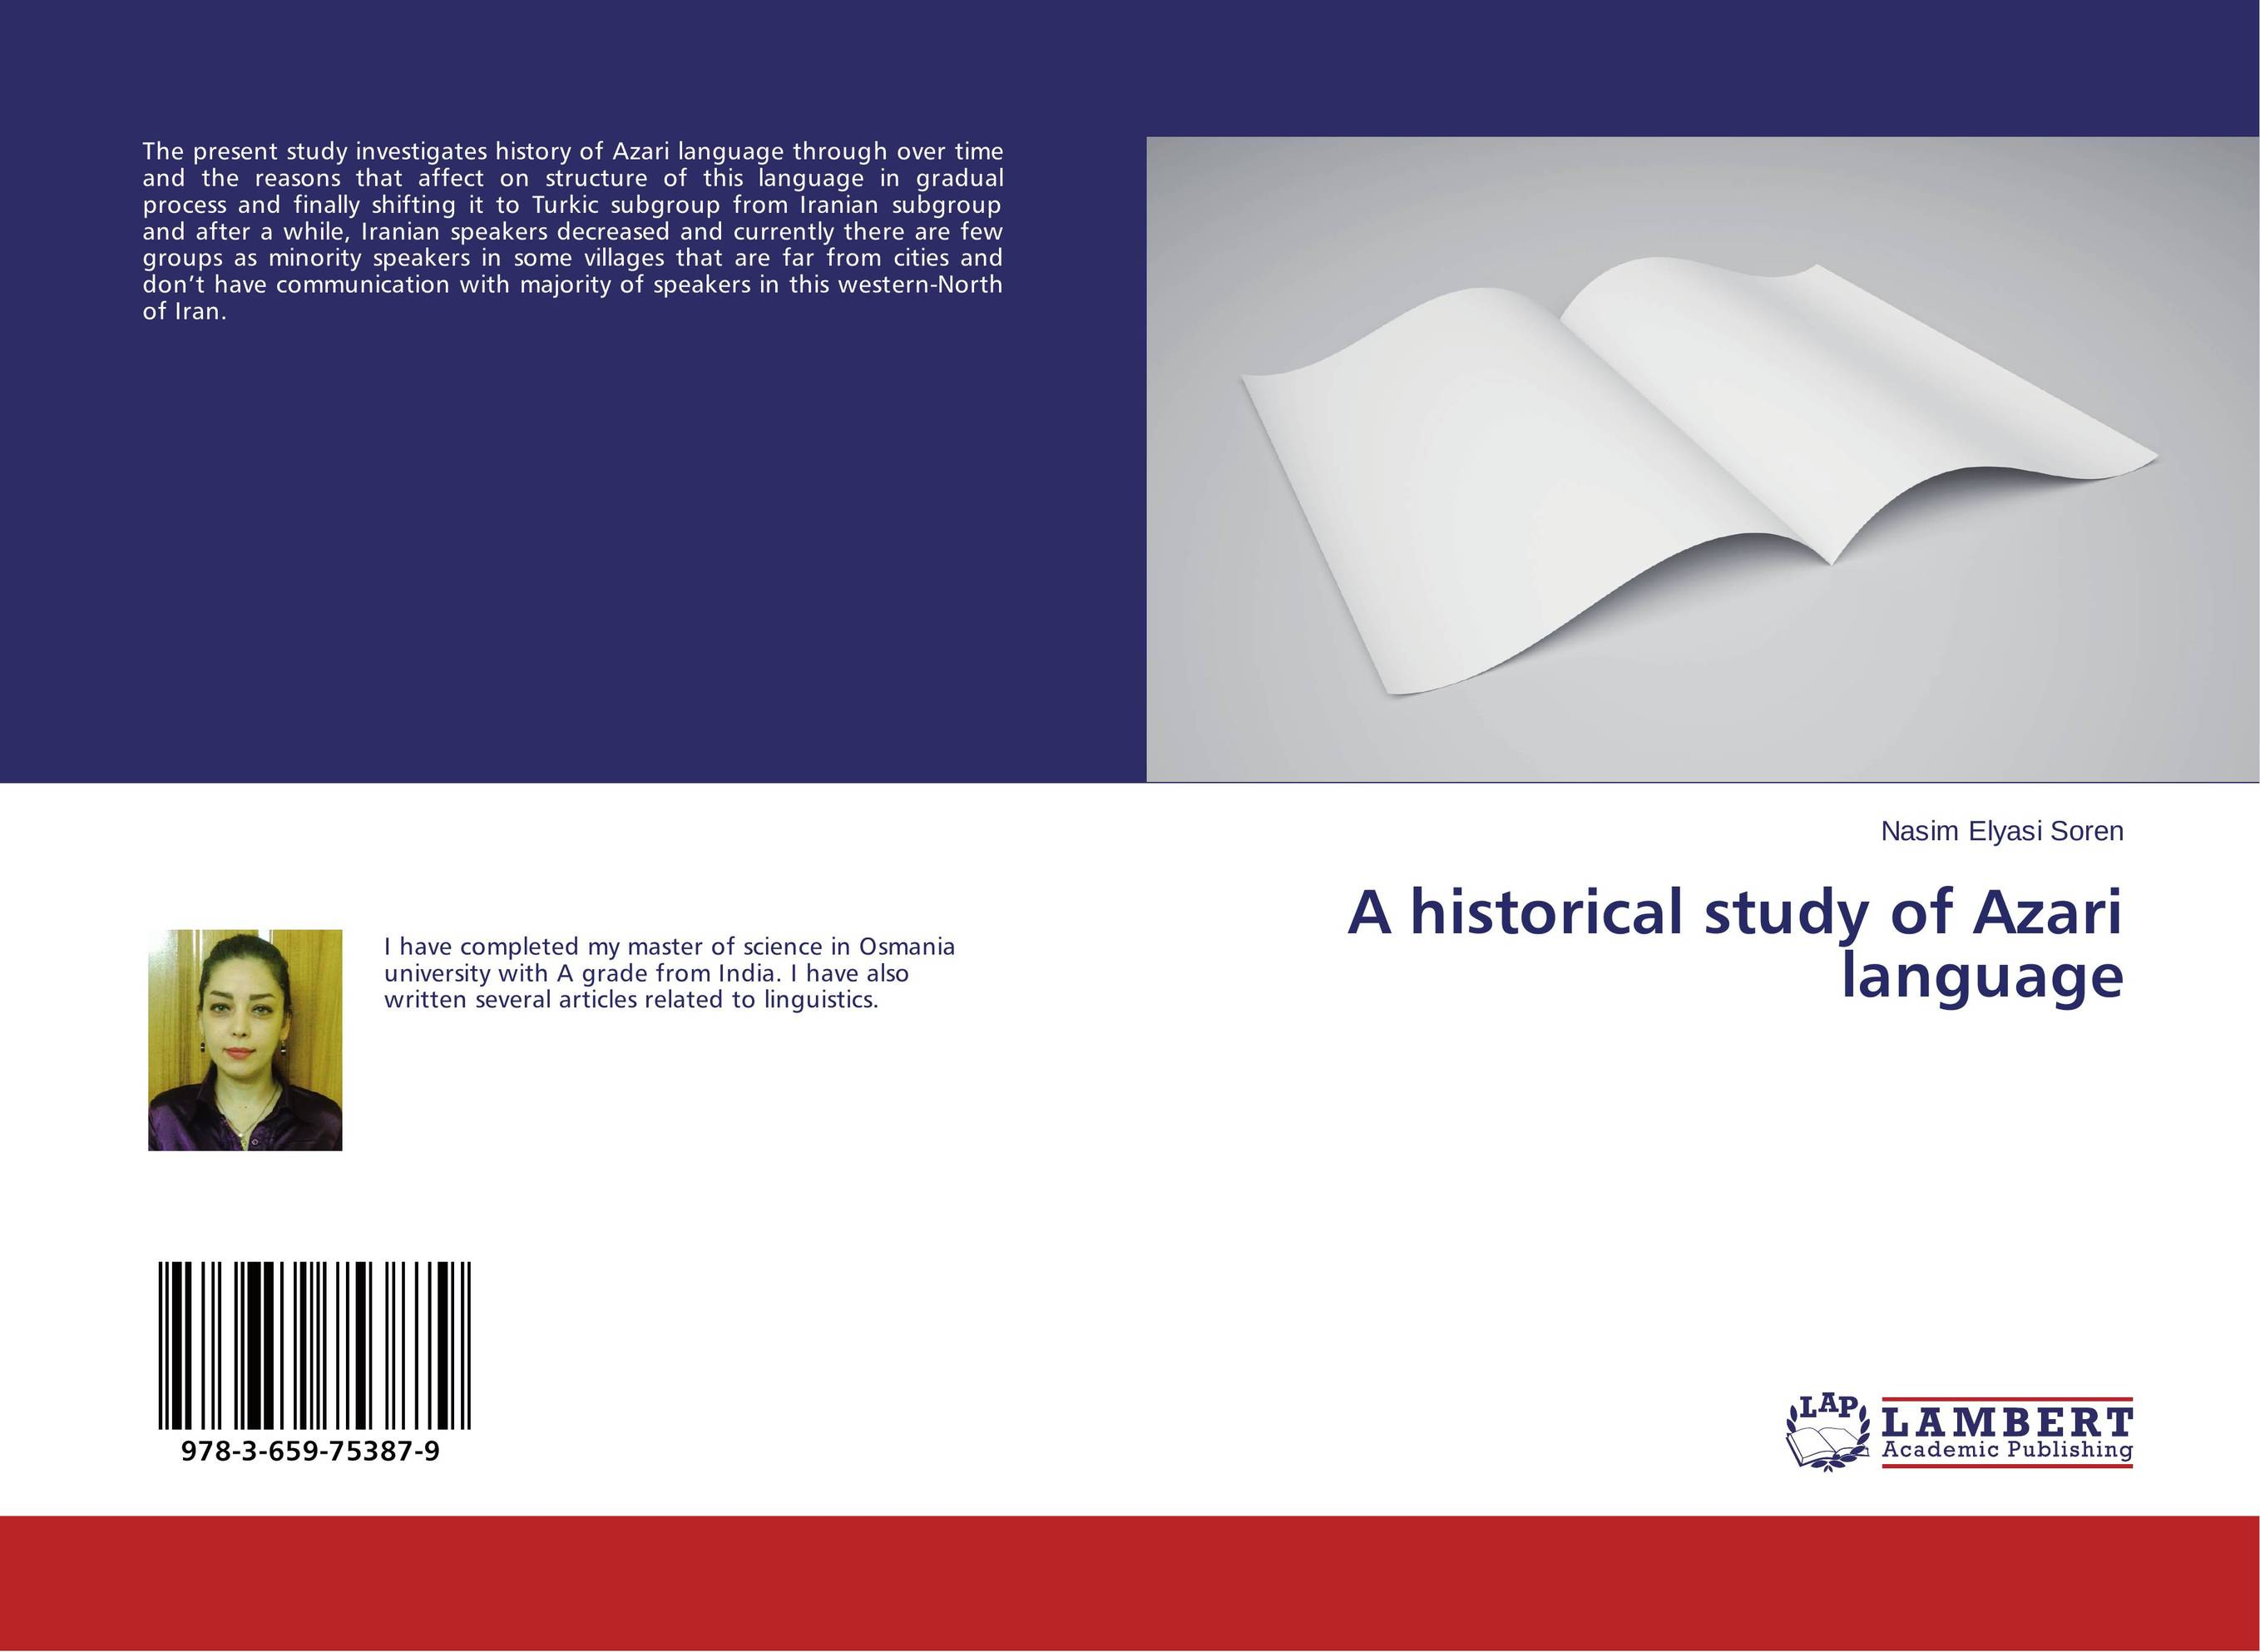 A historical study of Azari language early signs of language shifting